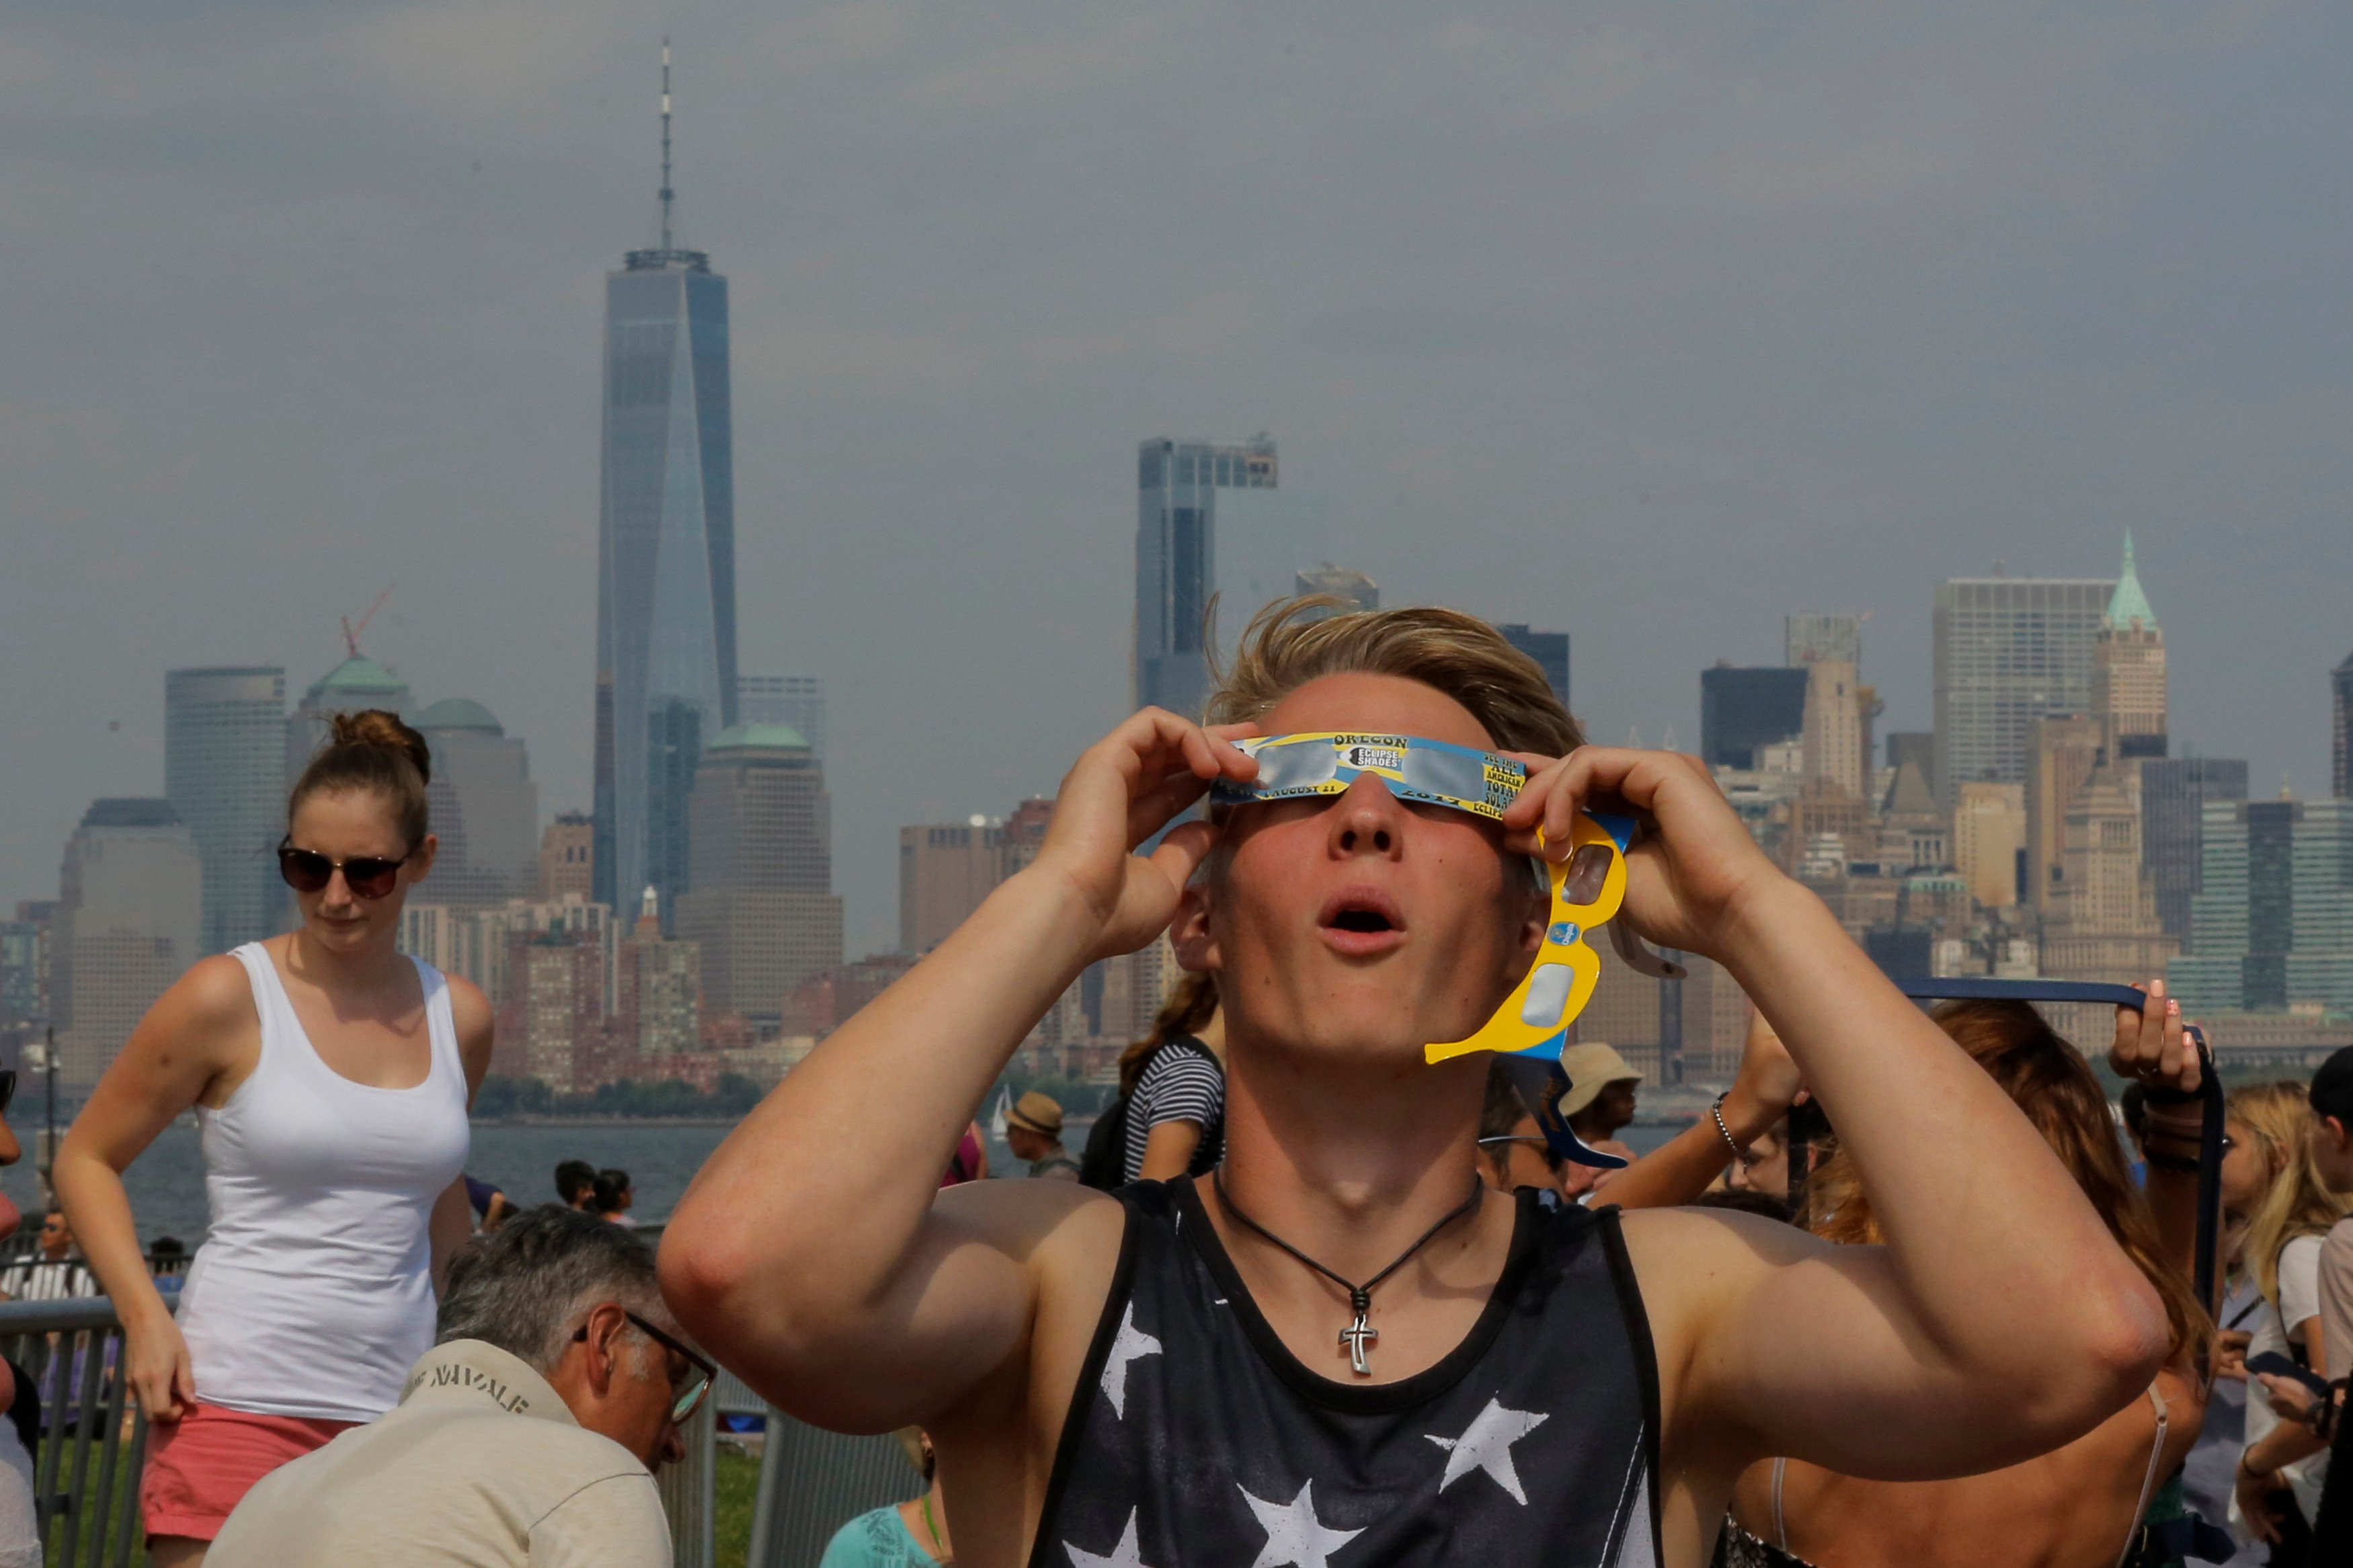 A man takes a look at the solar eclipse at Liberty State Island as the Lower Manhattan and One World Trade center are seen in the background in New York, U.S., August 21, 2017. Location coordinates for this image are 40.4124' N, 74.237'. W